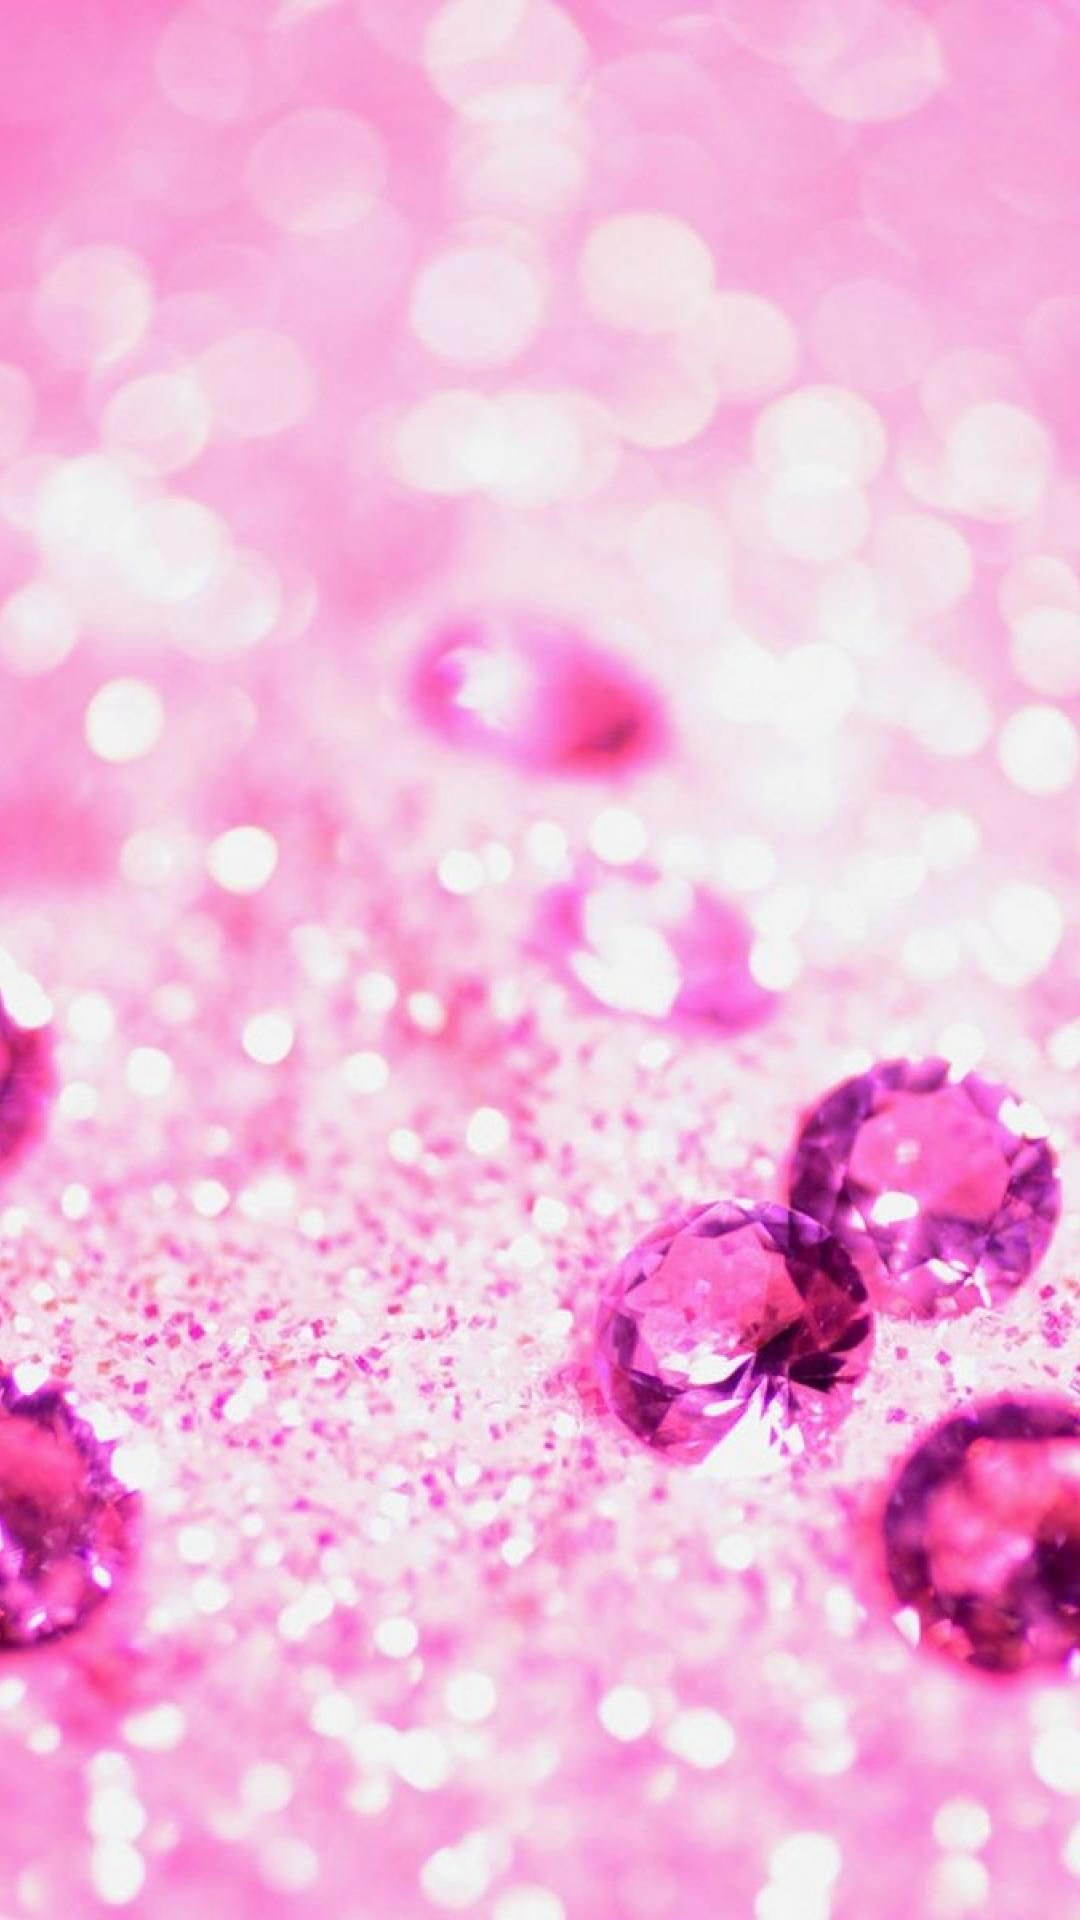 jewelry glitter wallpaper - photo #22